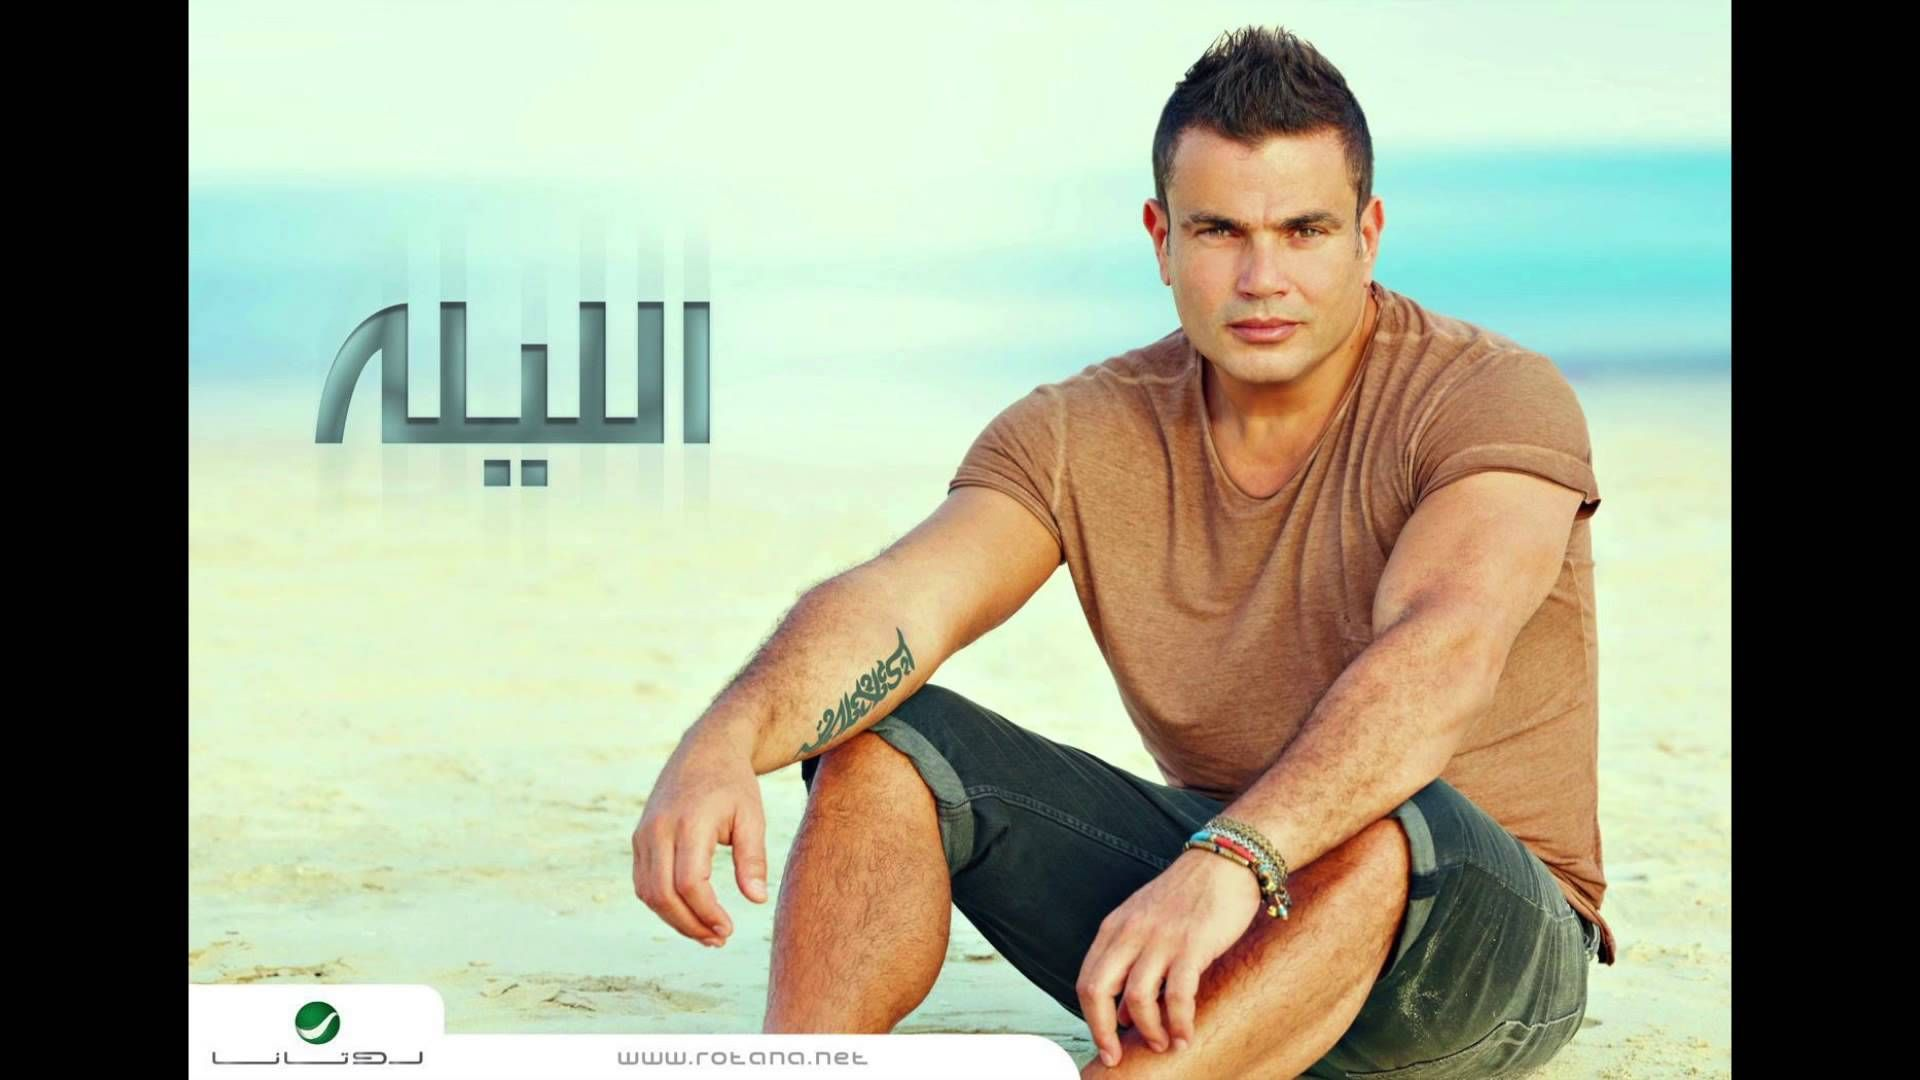 Amr Diab El Leila El Leila New Music Releases Amr Pop Songs